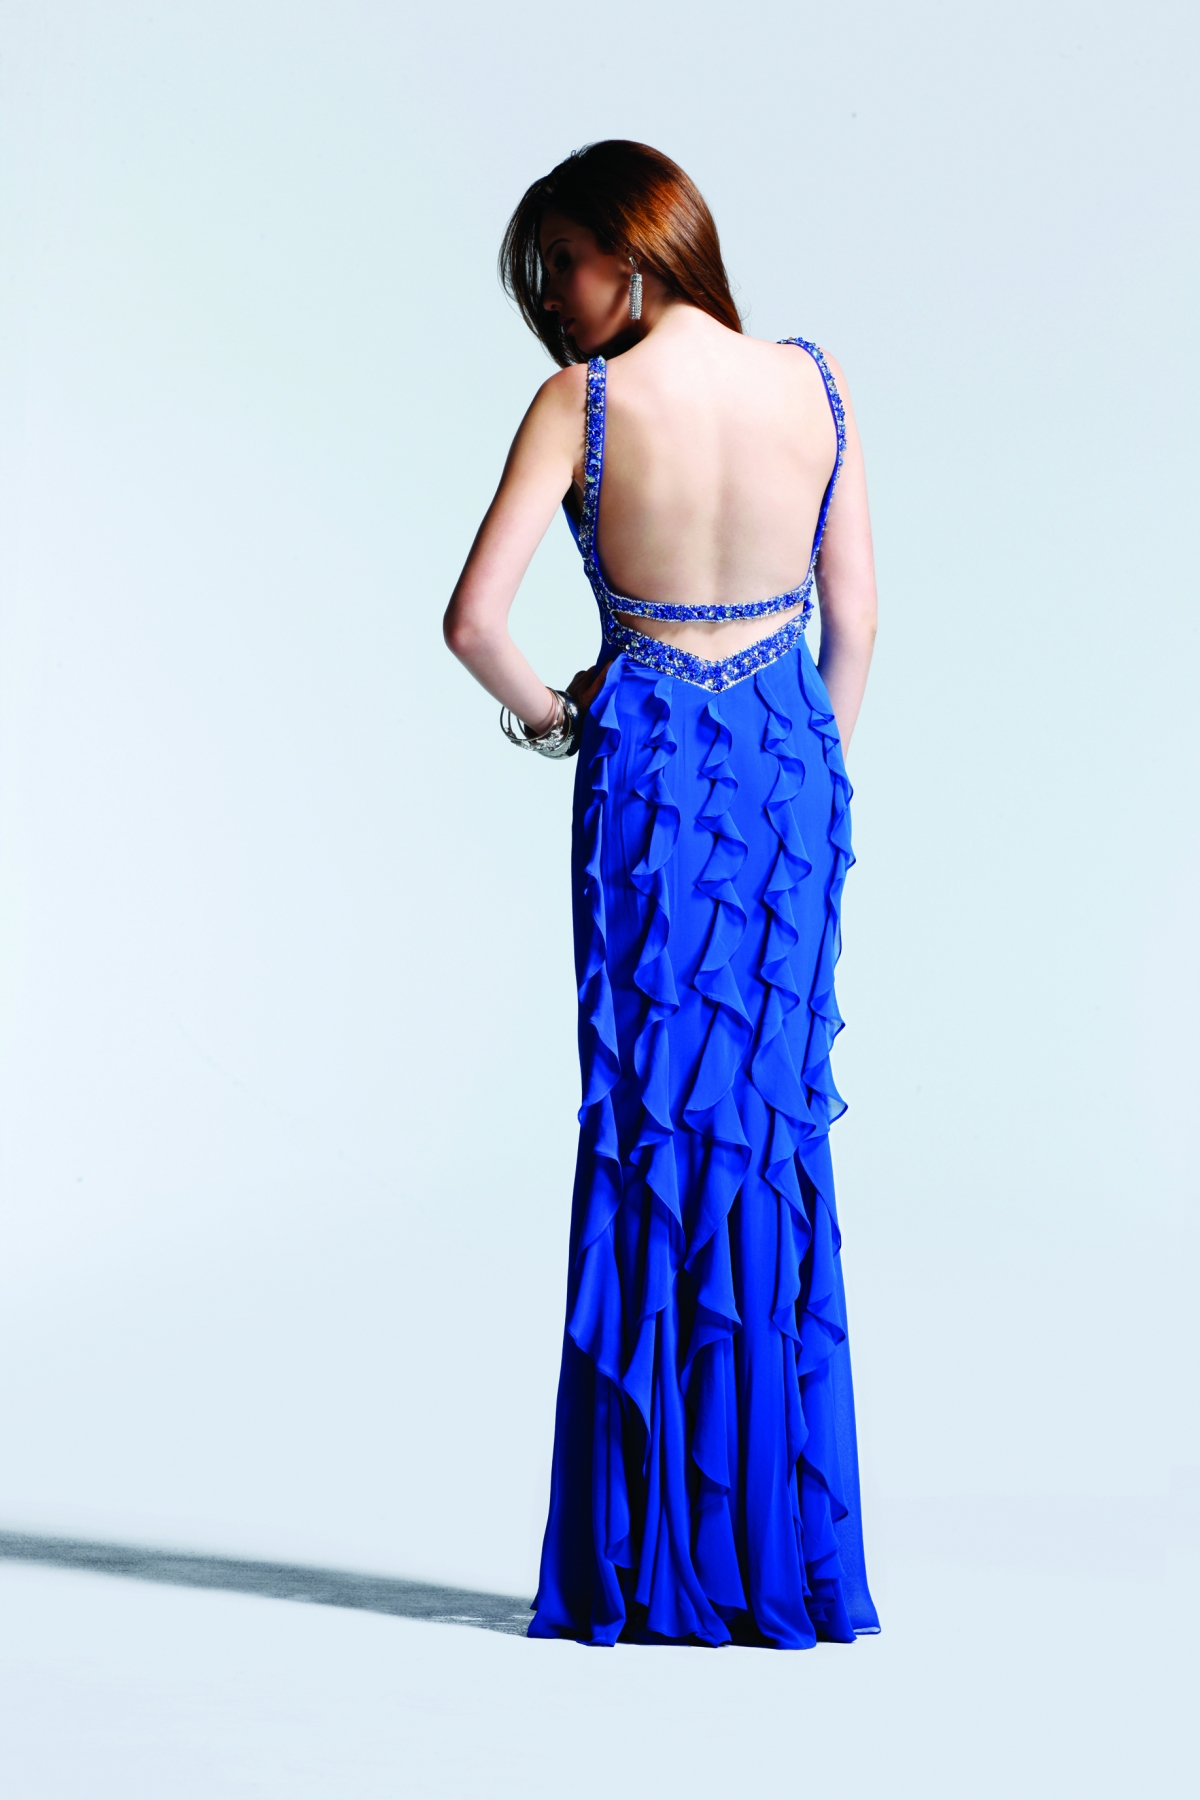 Most Popular Prom Dresses In Boston for 2014 – GlitteratiStyle.com